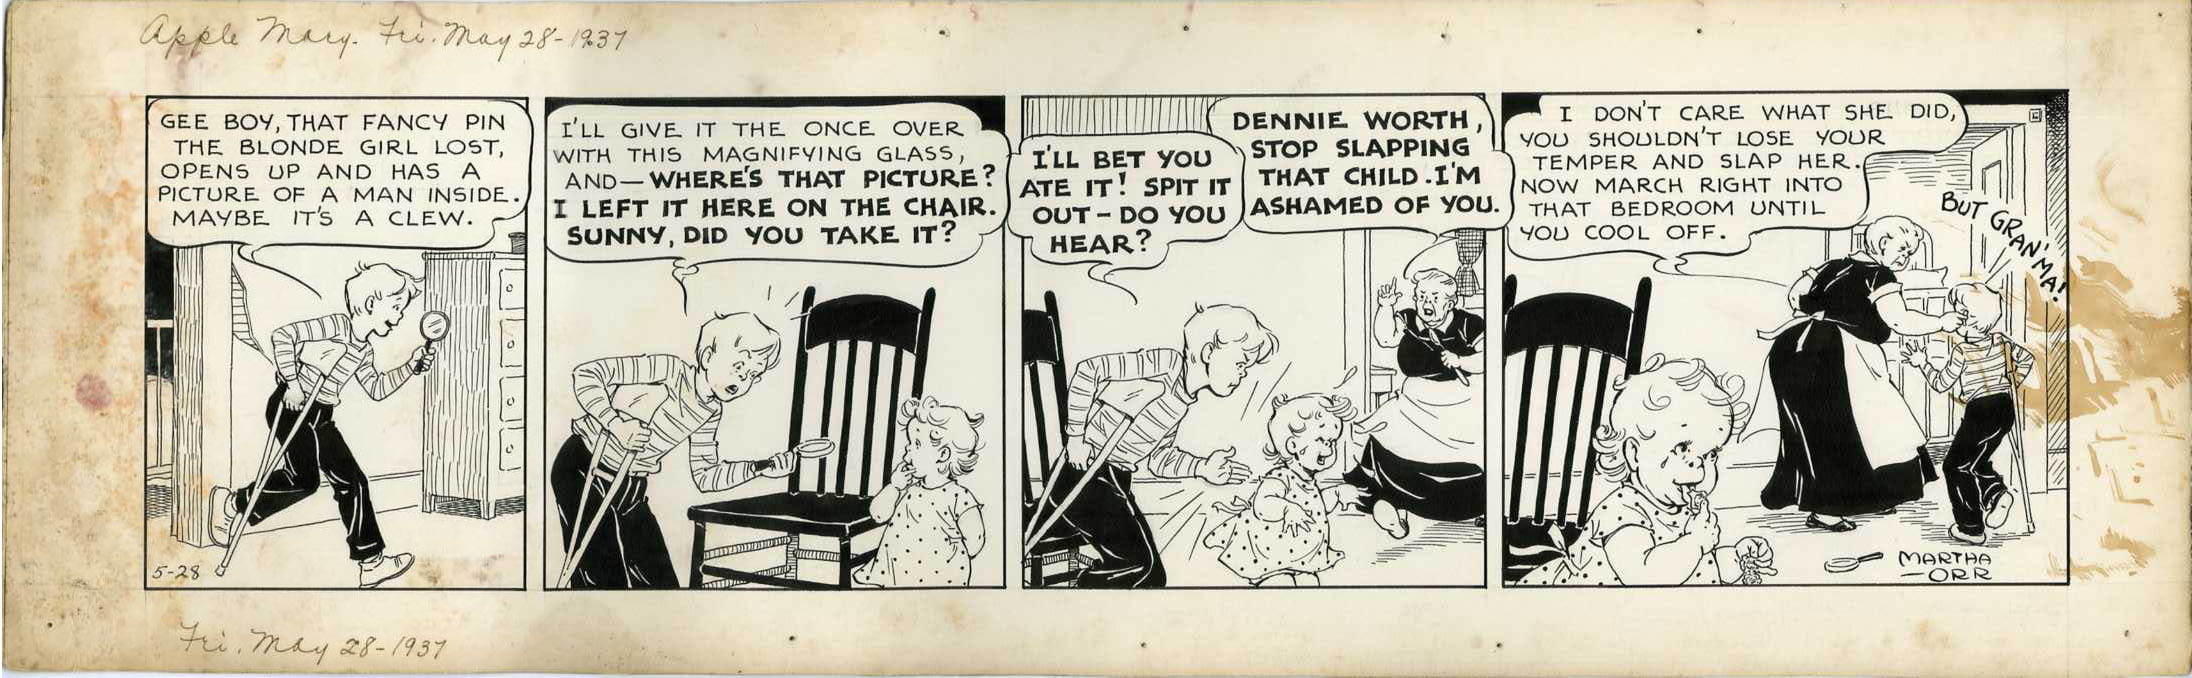 MARTHA ORR - APPLE MARY DAILY ORIGINAL ART 5-28-37 SPIT IT OUT!